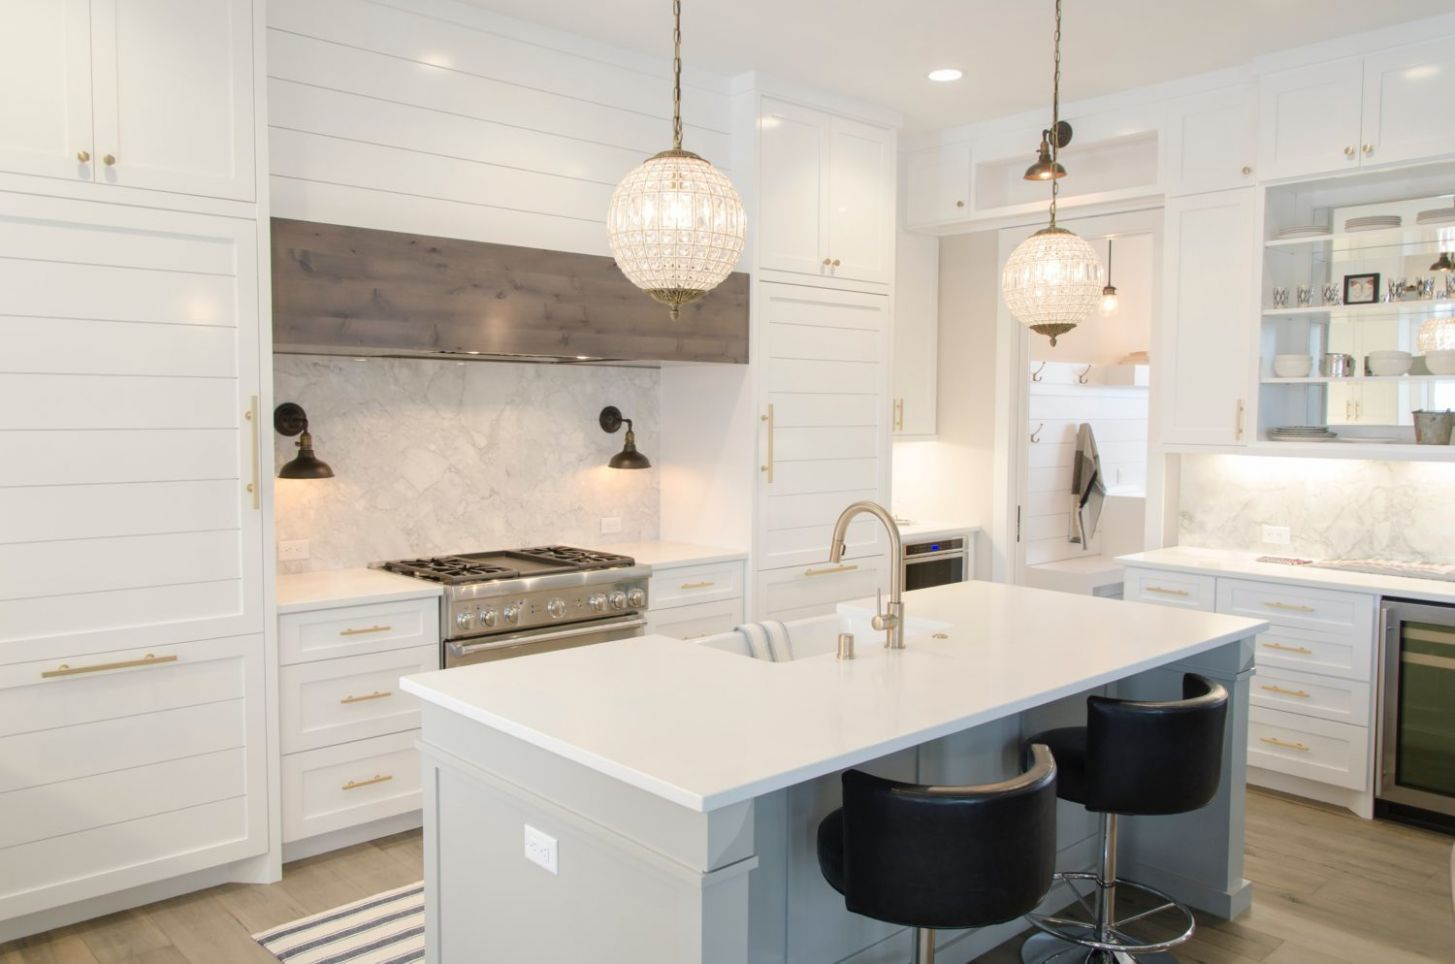 8 Kitchen Update Ideas That Cost Less and Make You More - kitchen ideas and costs